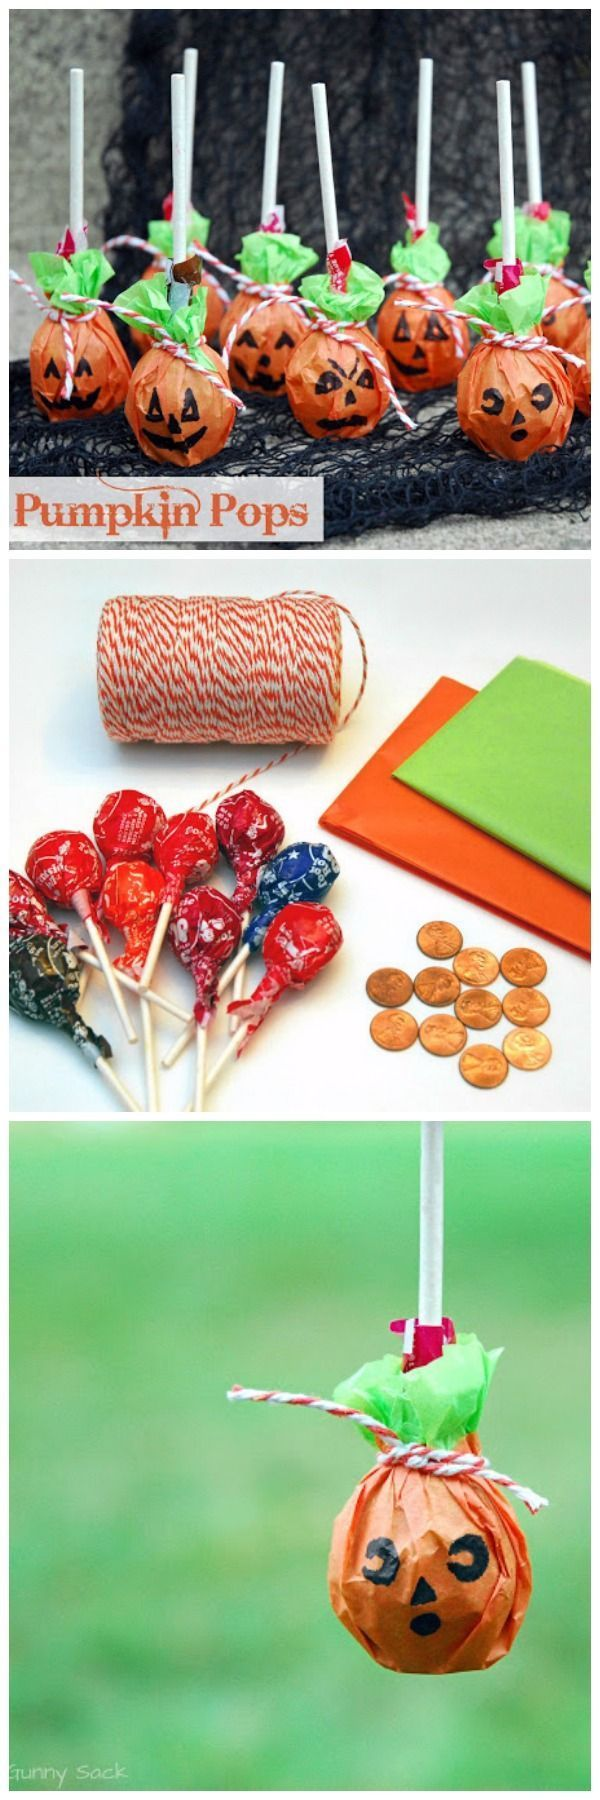 17+ Simple halloween crafts for adults ideas